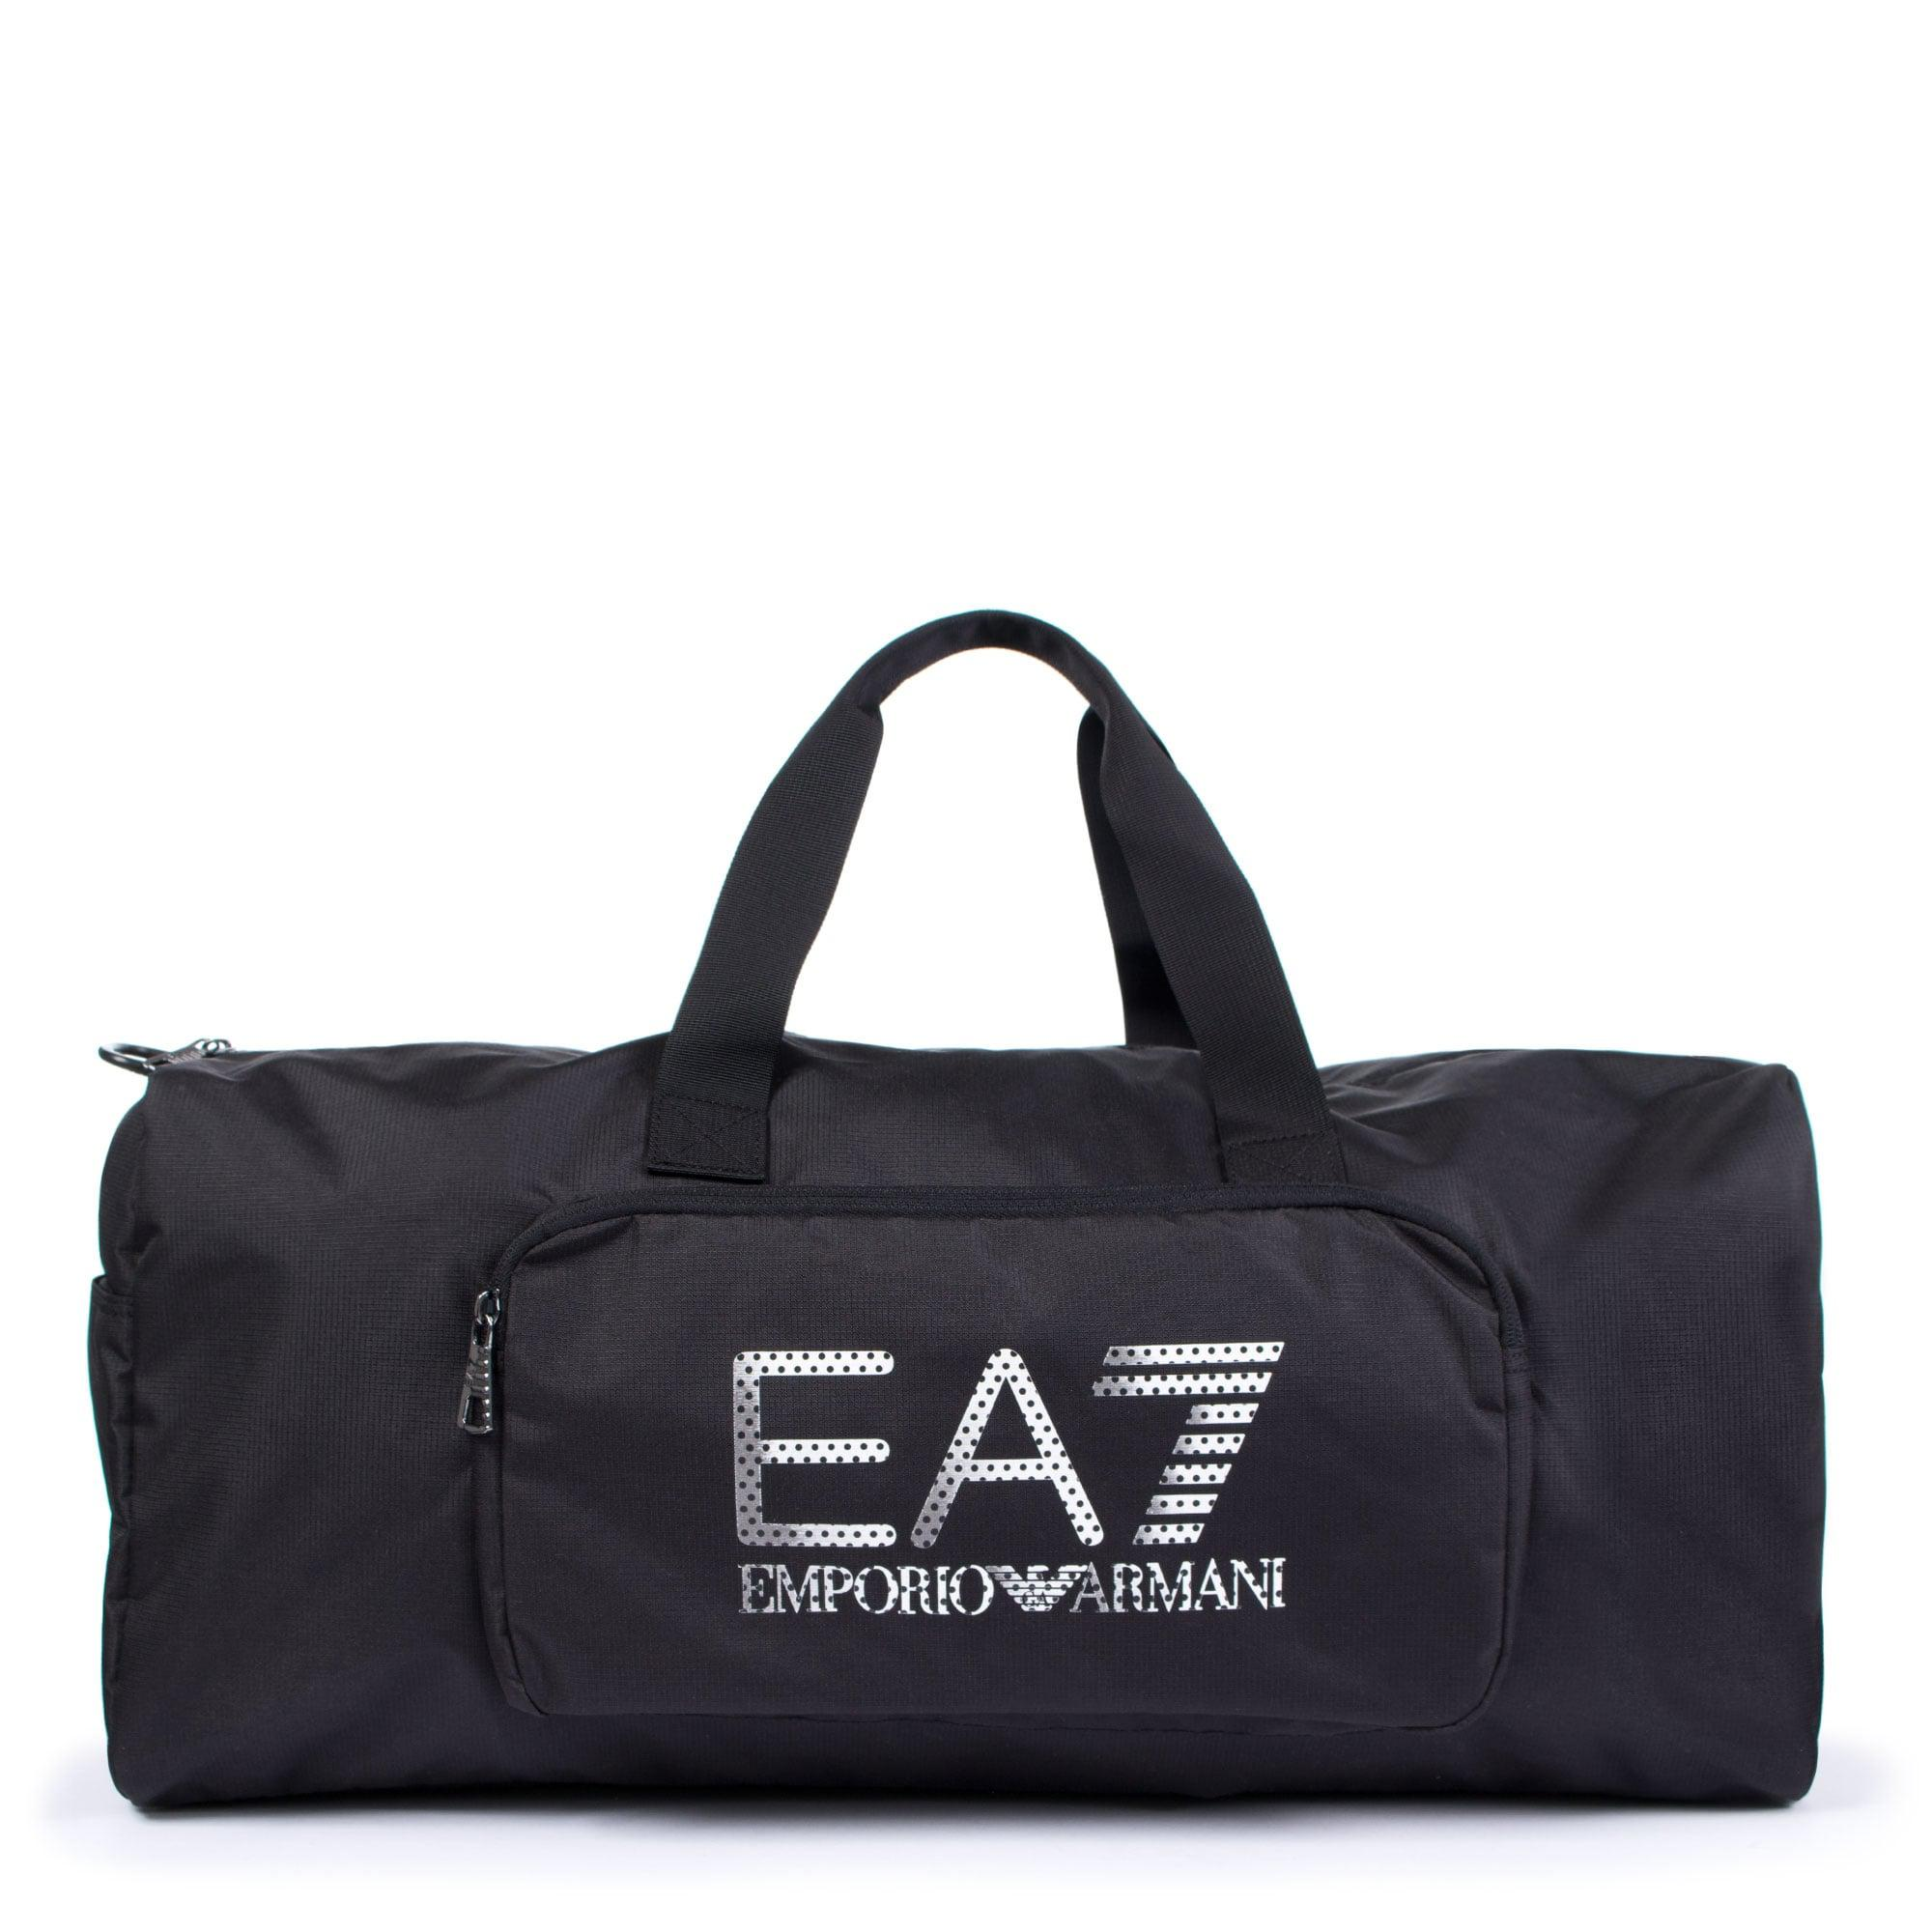 4f3773a5b02c Ea7 Logo Gym Bag In Black in Black for Men - Lyst